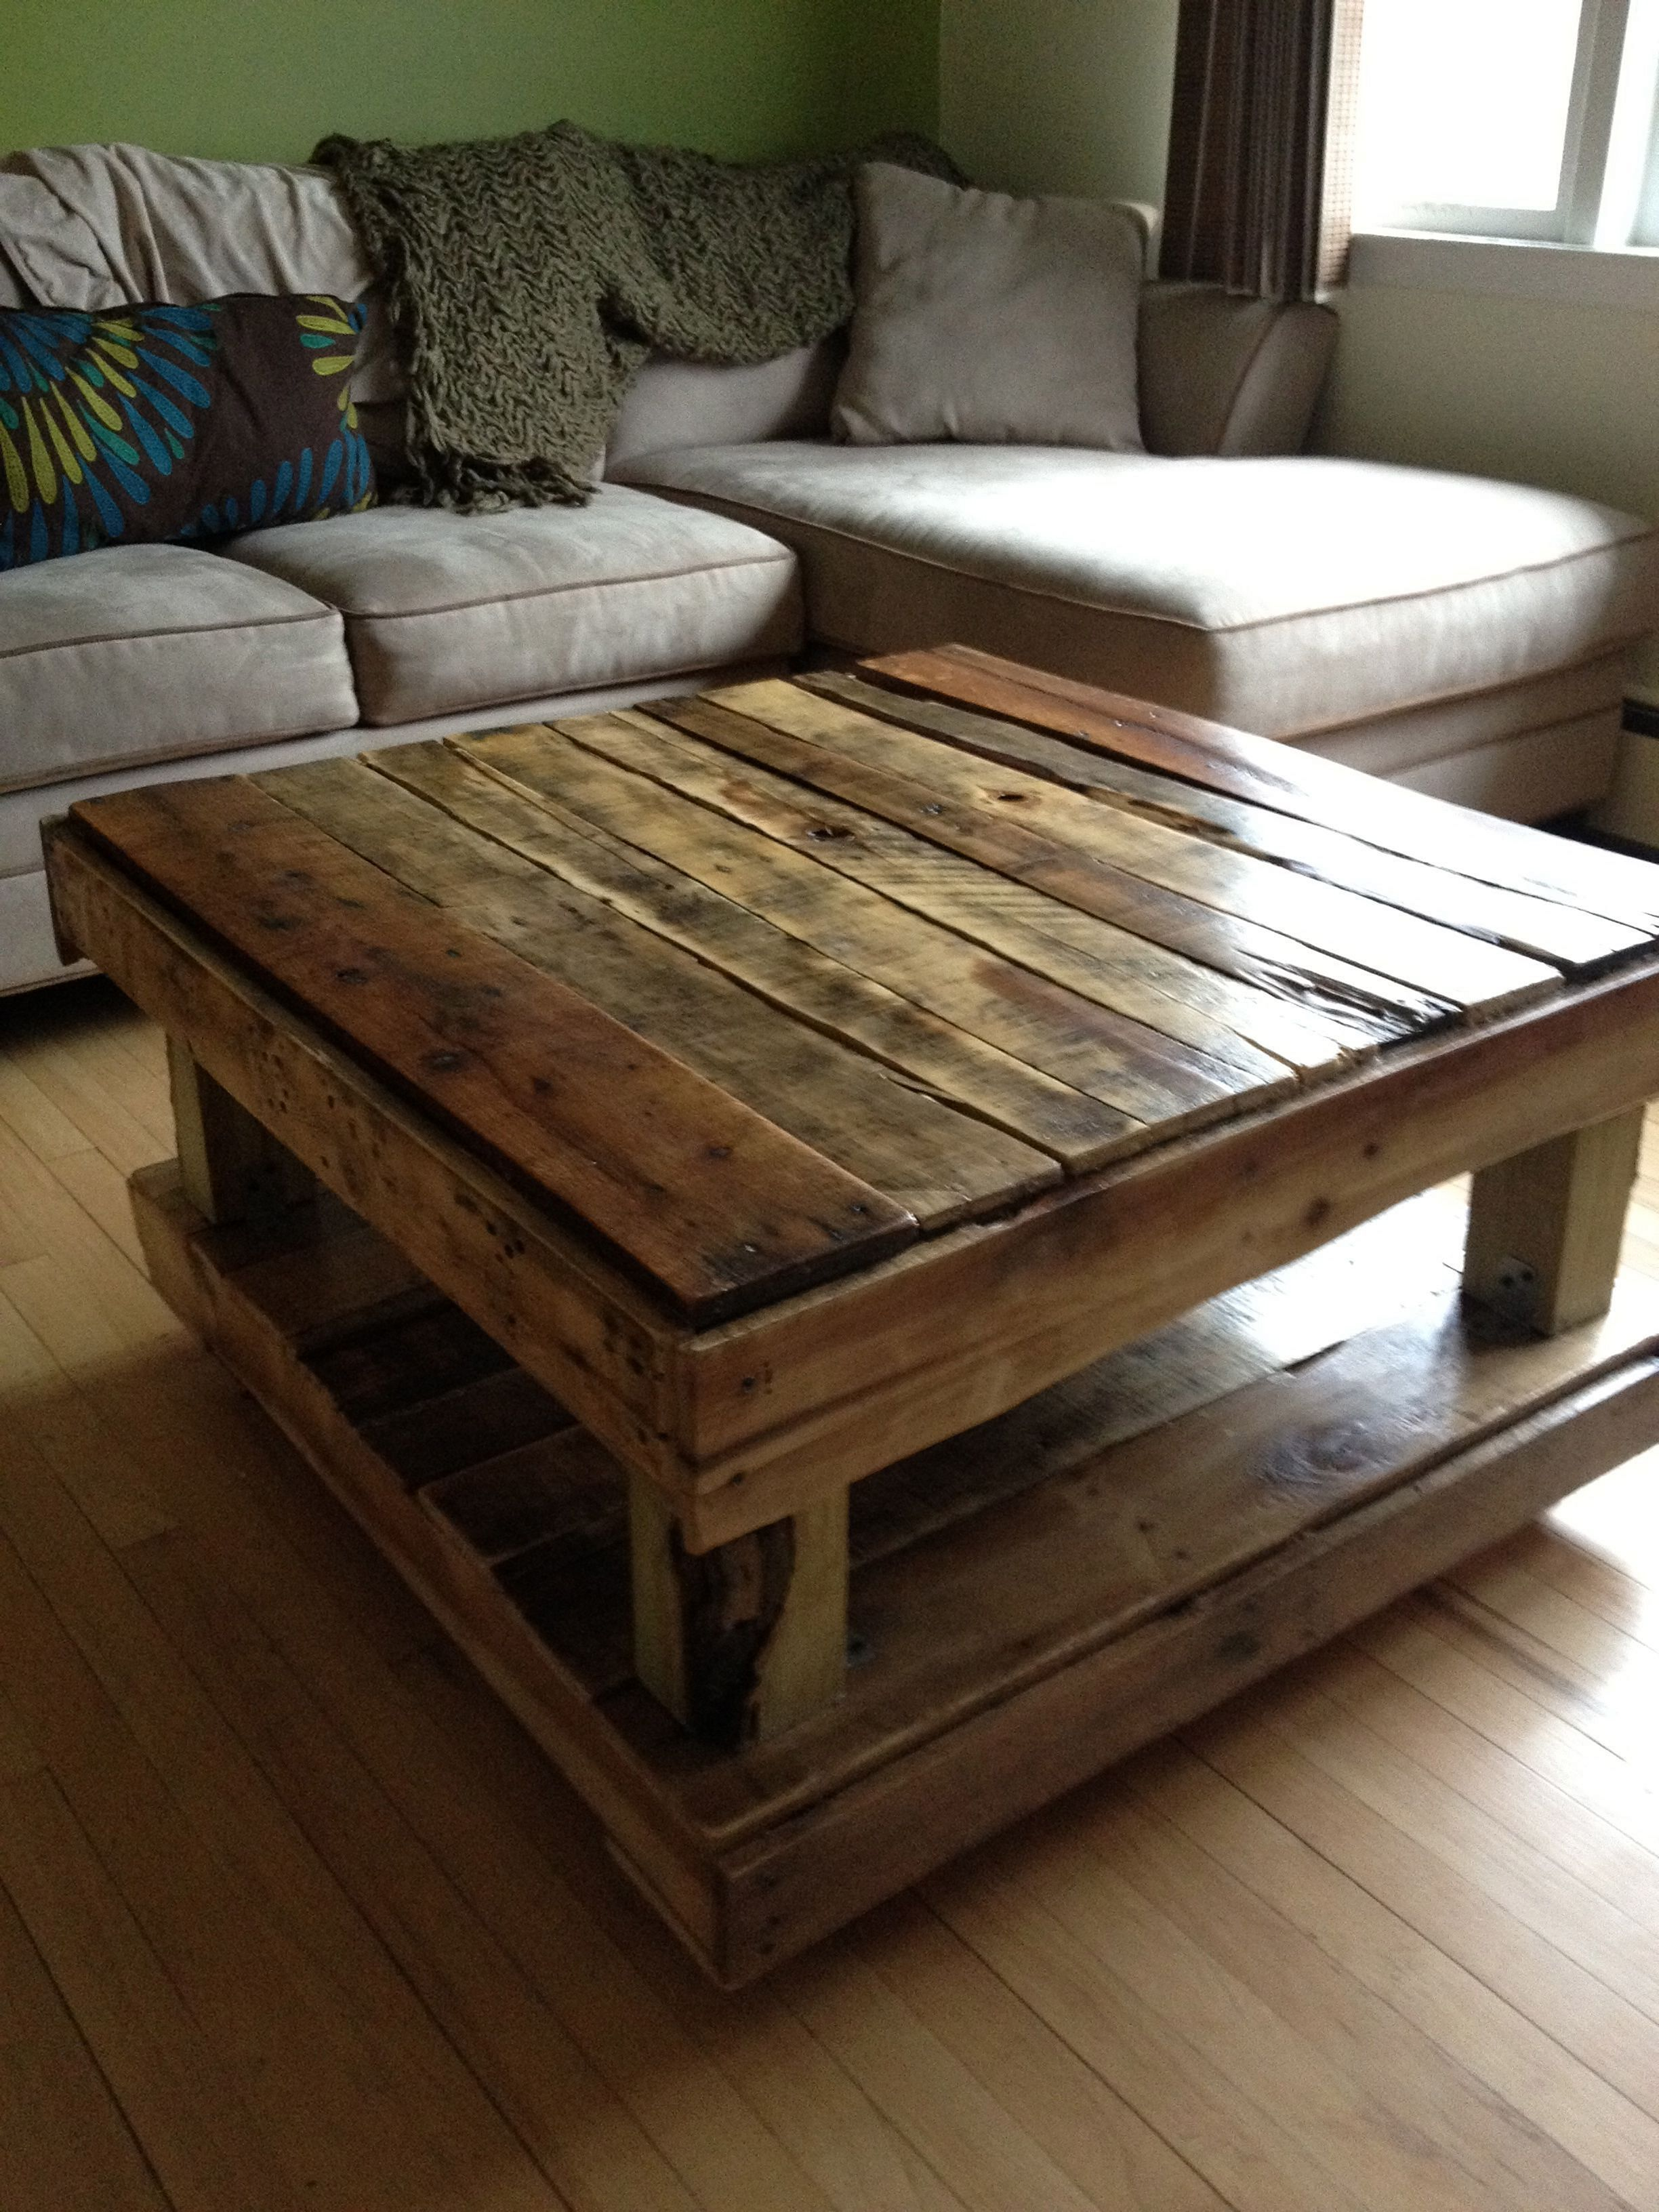 15 Incredible Wood Pallet Furniture Ideas To Increase Your Home Design With Images Pallet Furniture Wood Pallet Furniture Diy Furniture